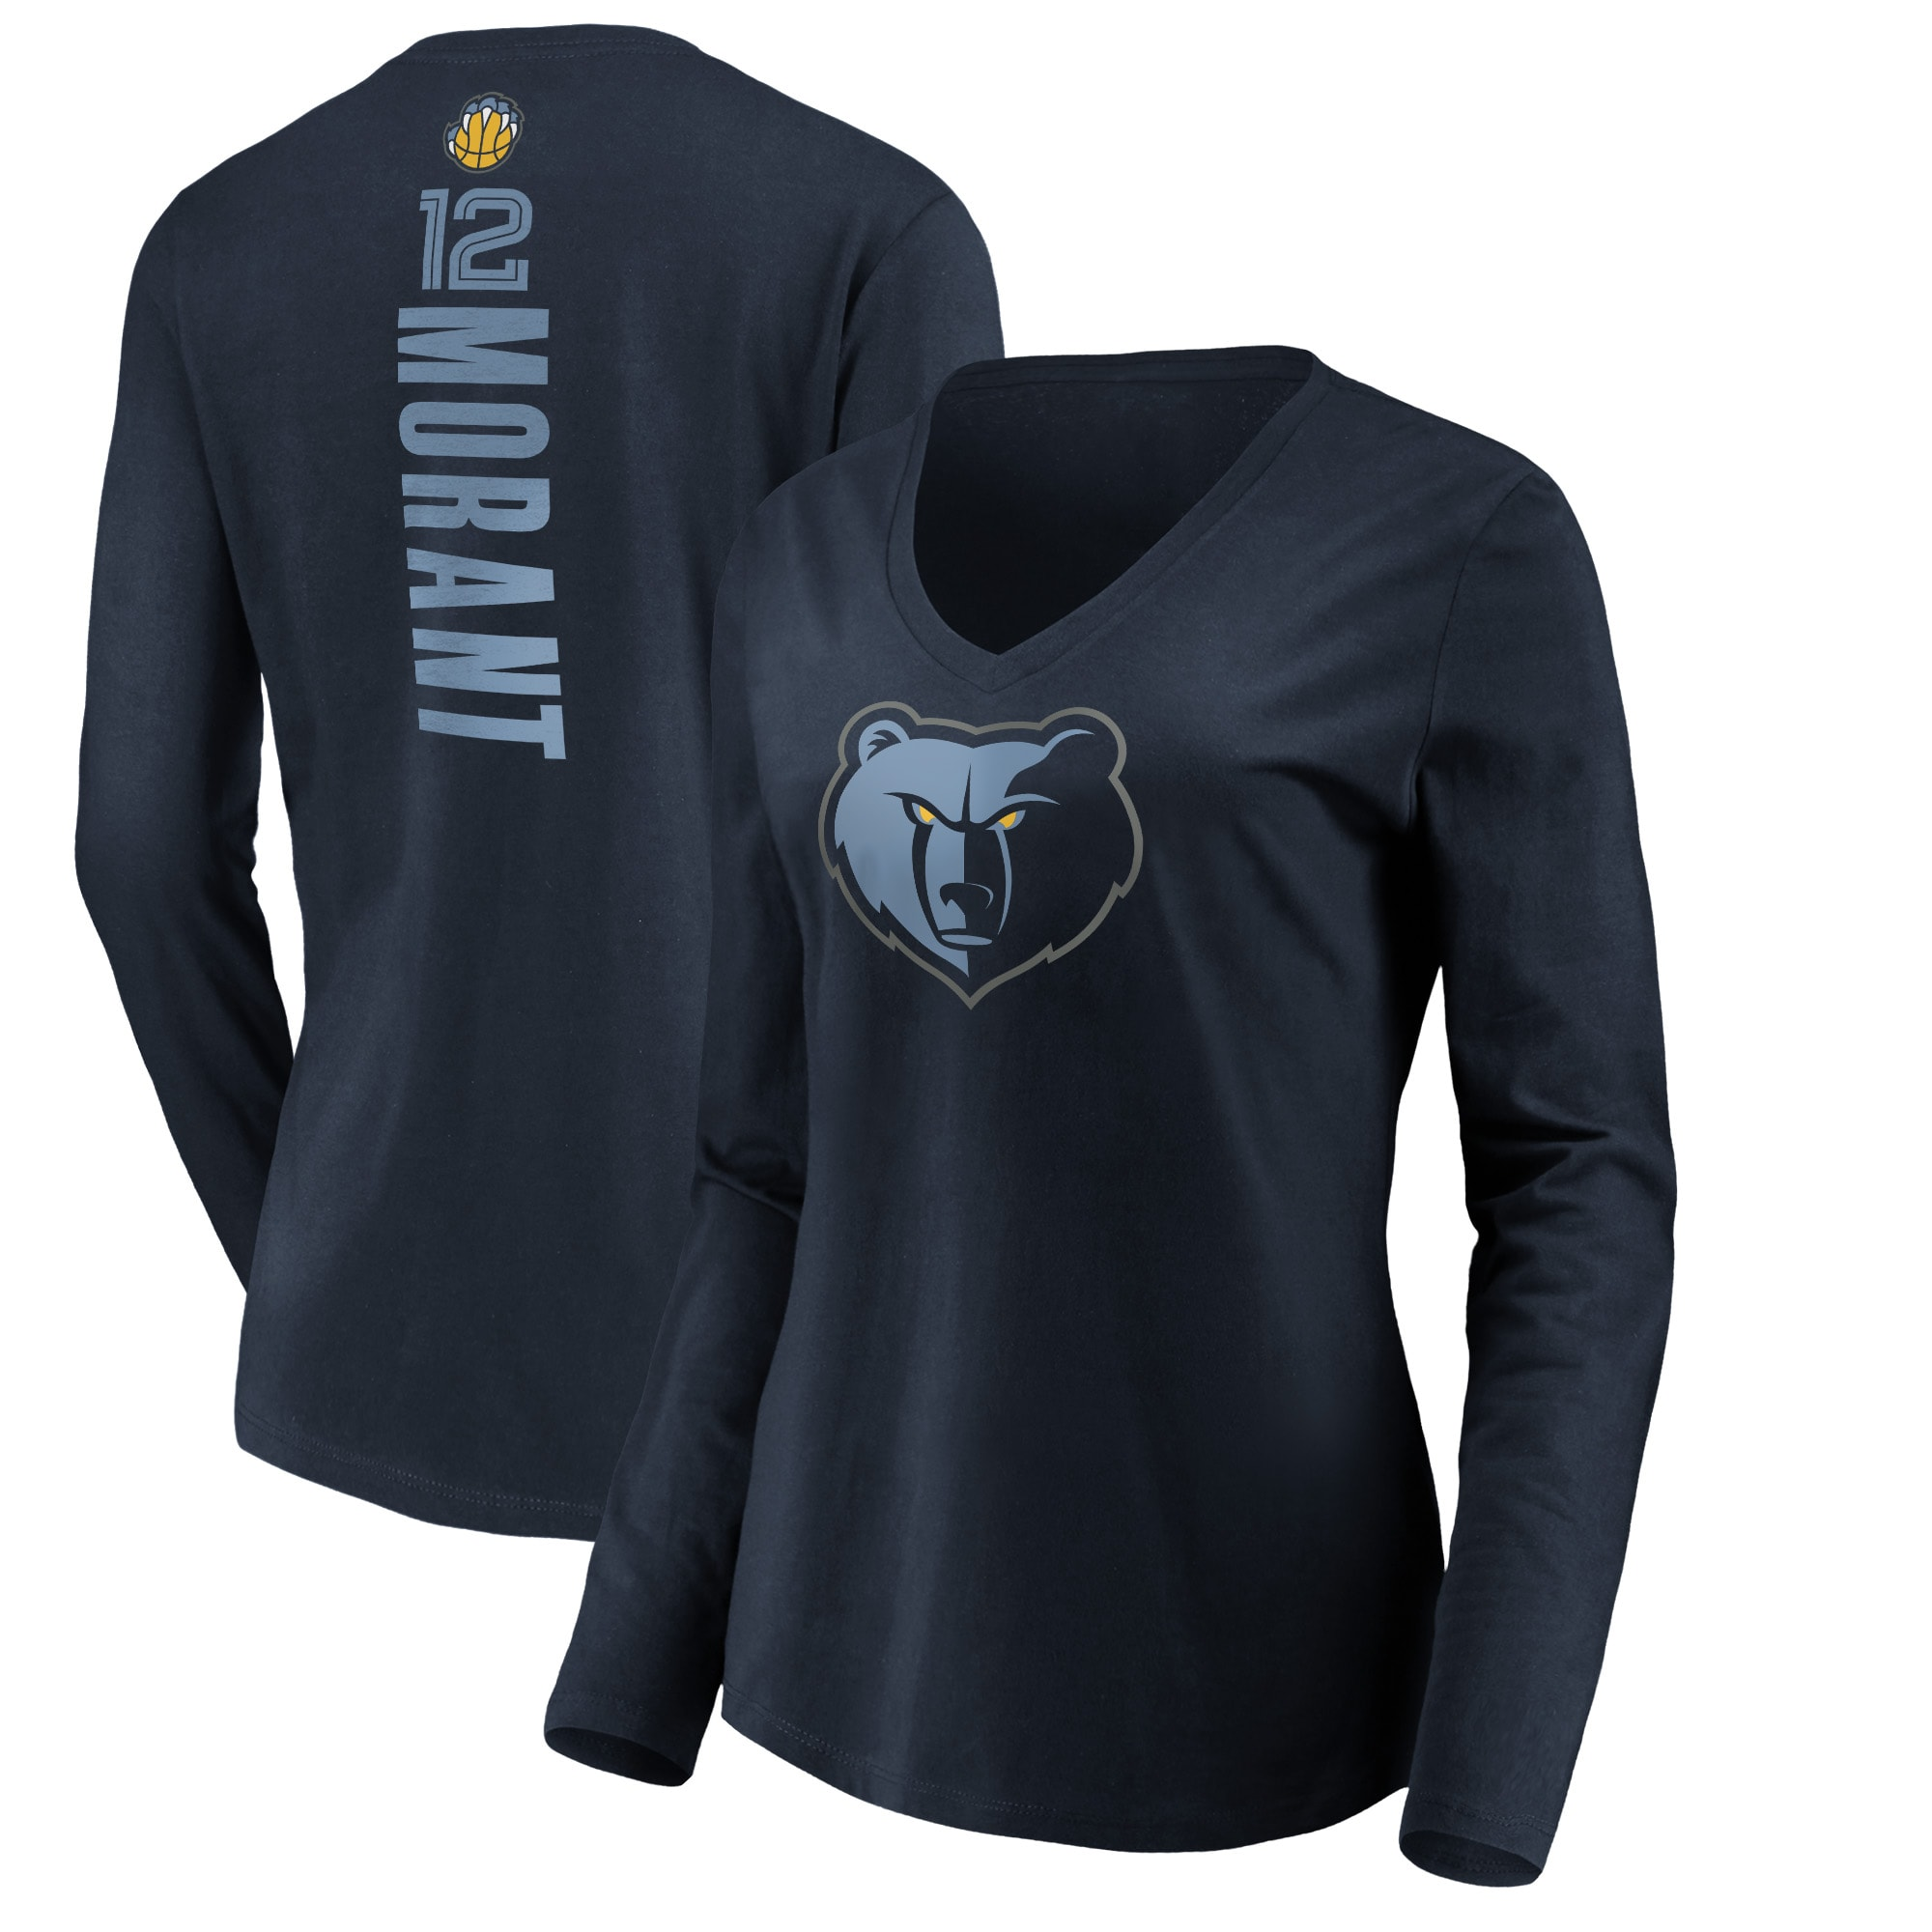 Ja Morant Memphis Grizzlies Fanatics Branded Women's Playmaker Name & Number Long Sleeve V-Neck T-Shirt - Navy